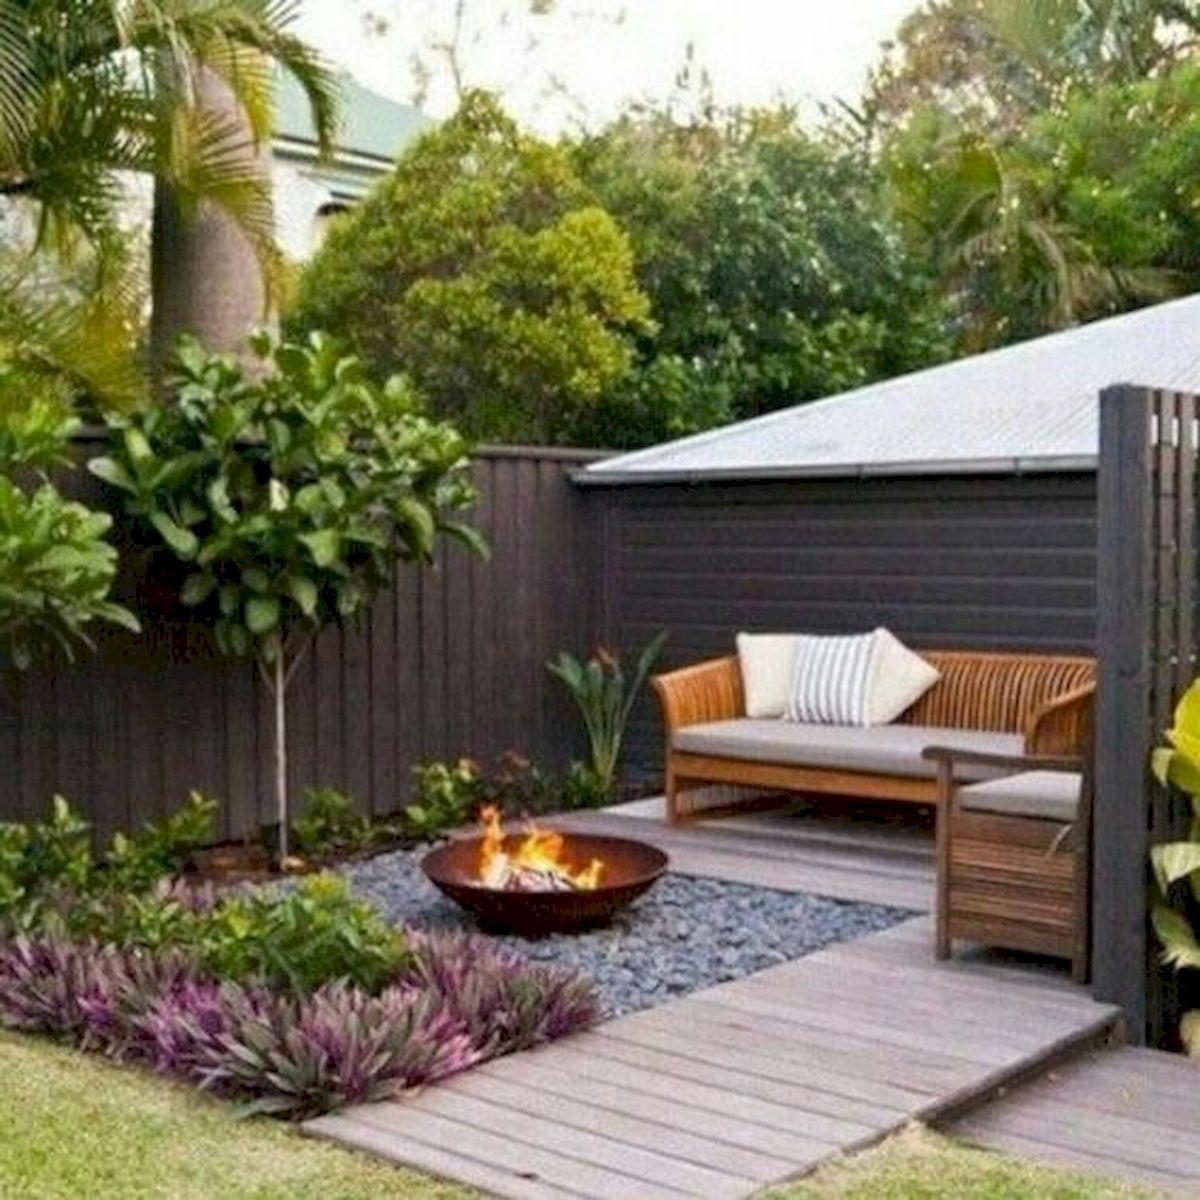 44 Amazing Backyard Seating Ideas To Make You Feel Relax Patio